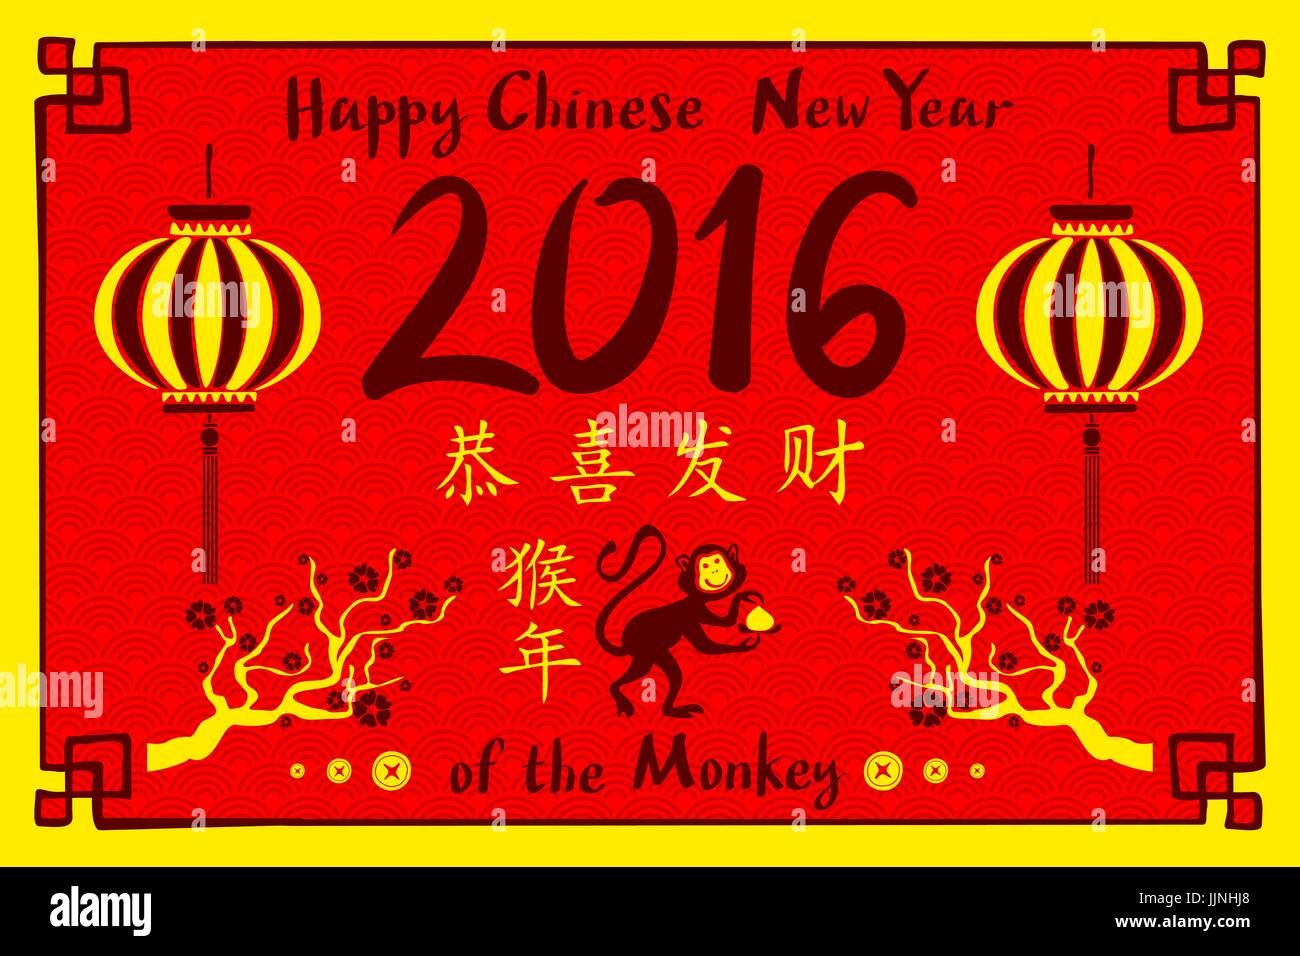 2016 Happy Chinese New Year of the Monkey with China cultural